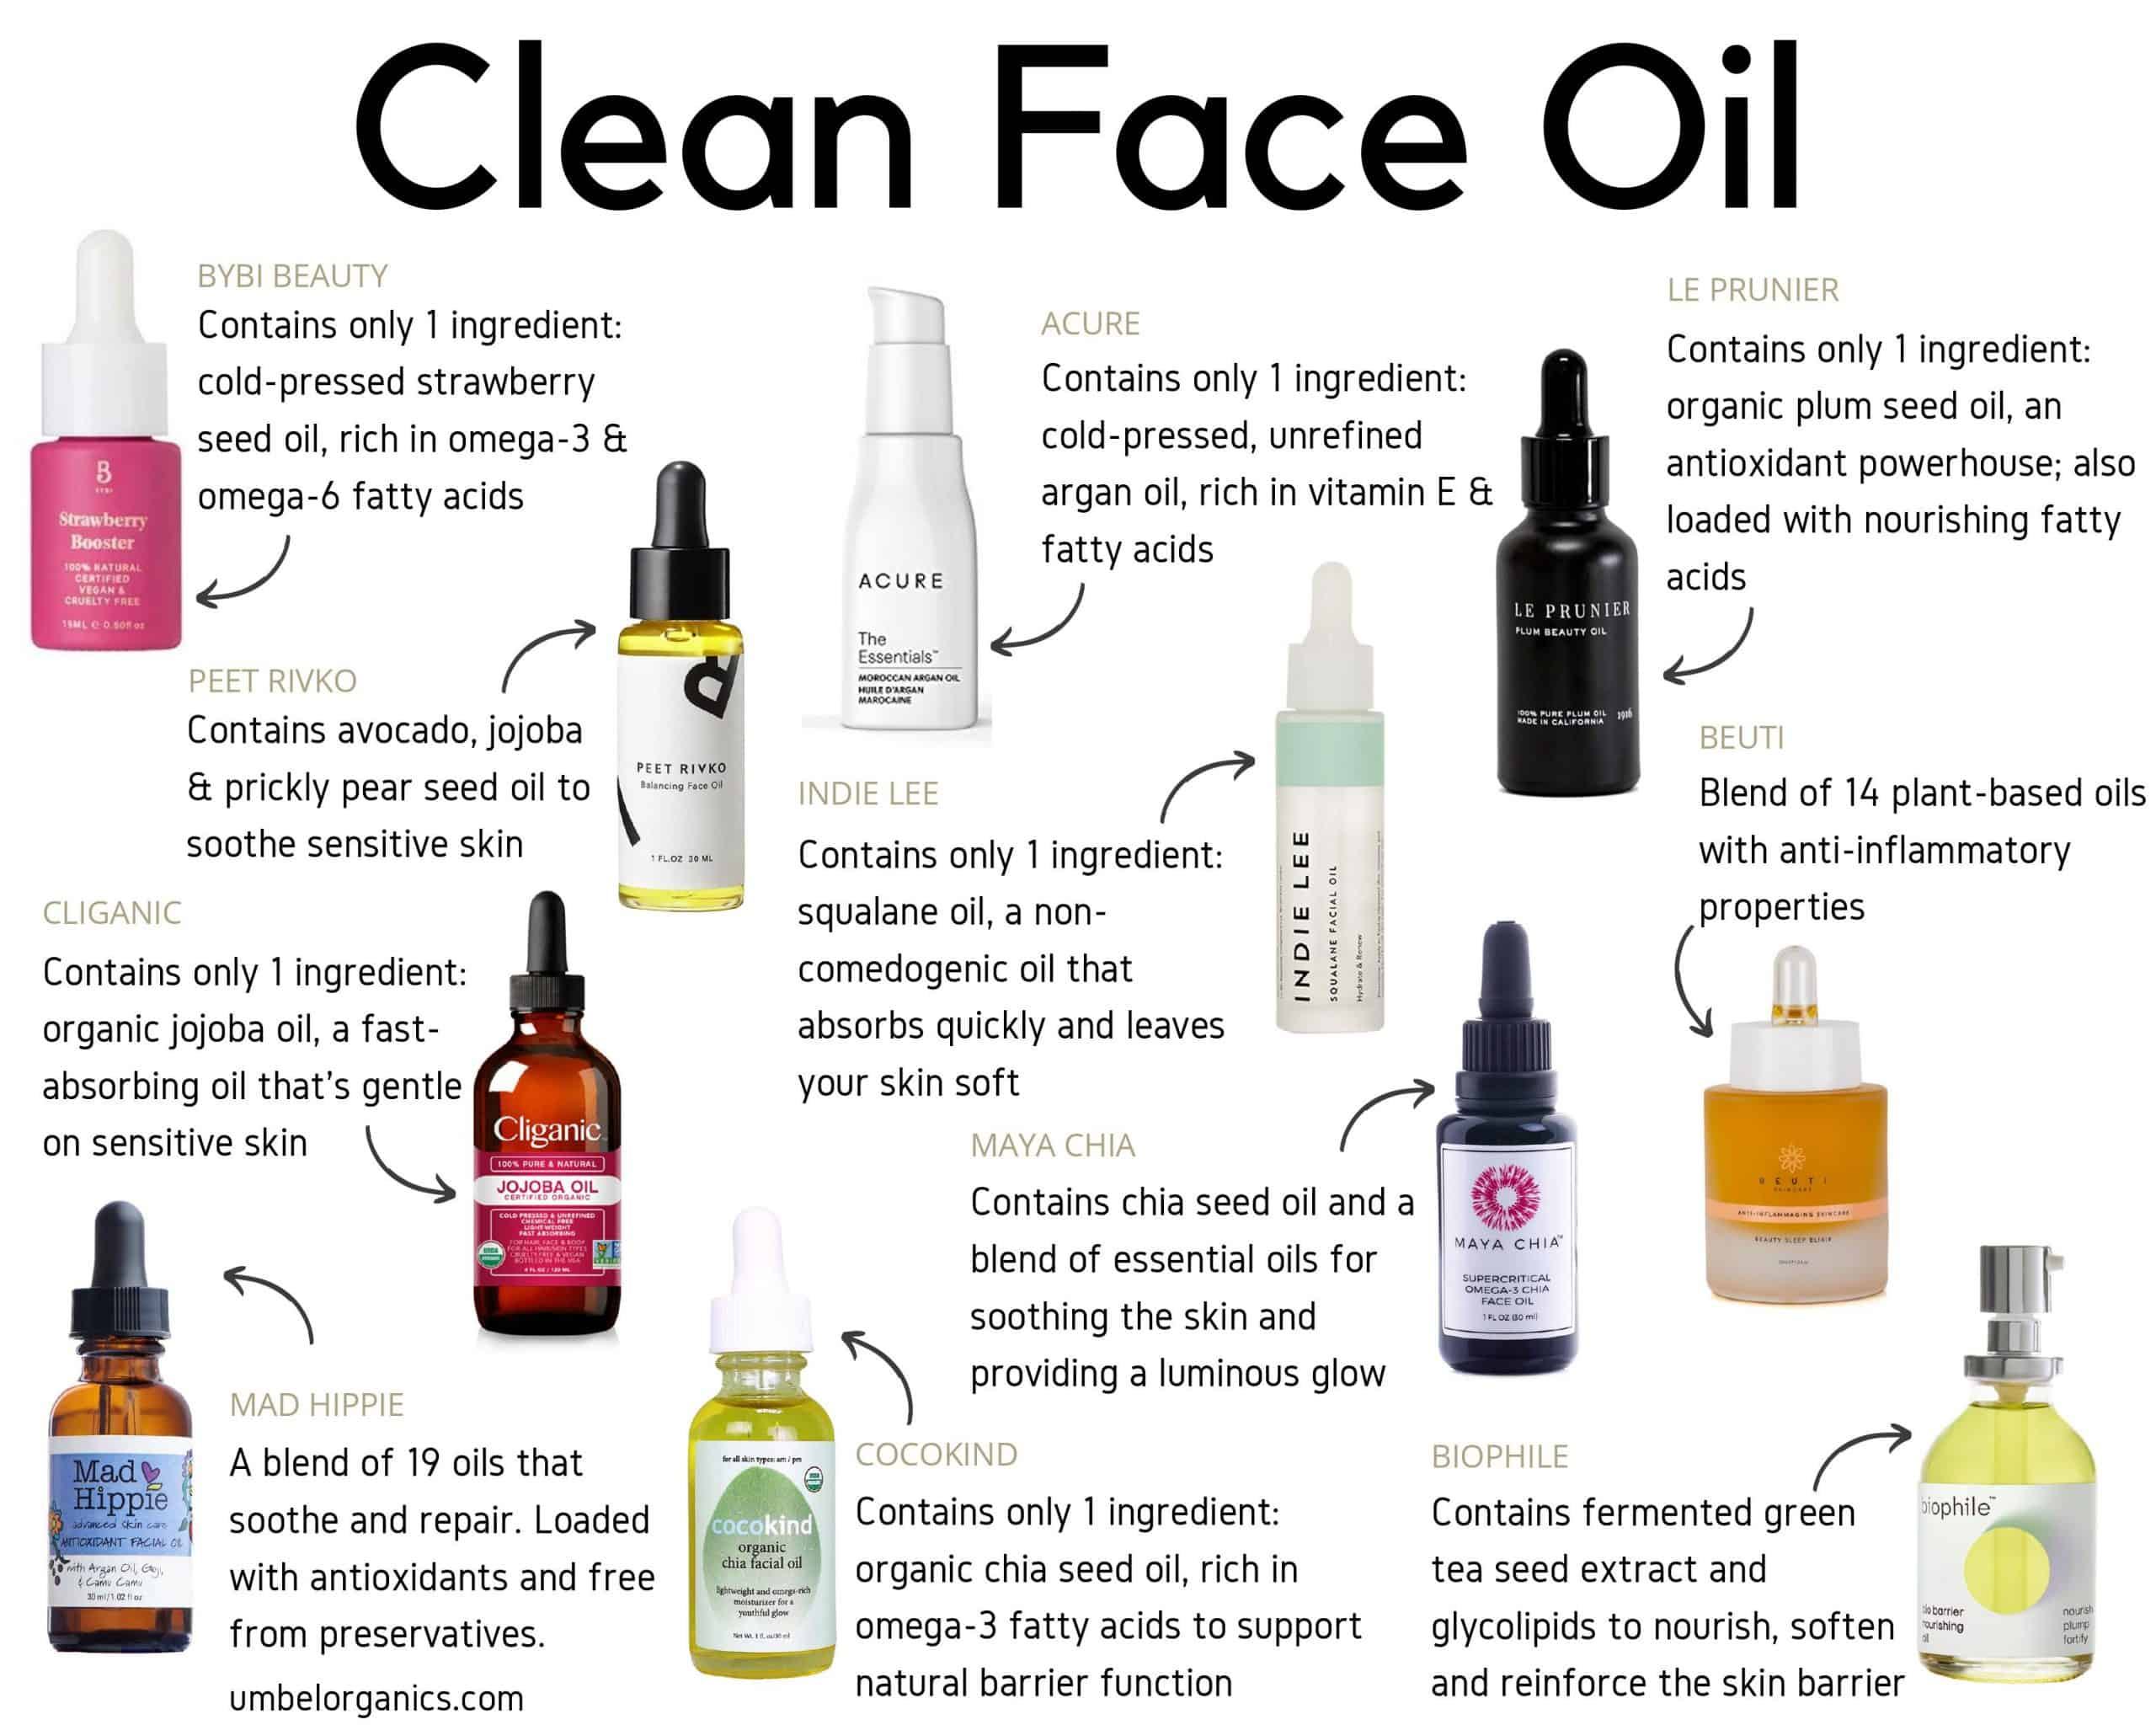 11 brands of clean face oil